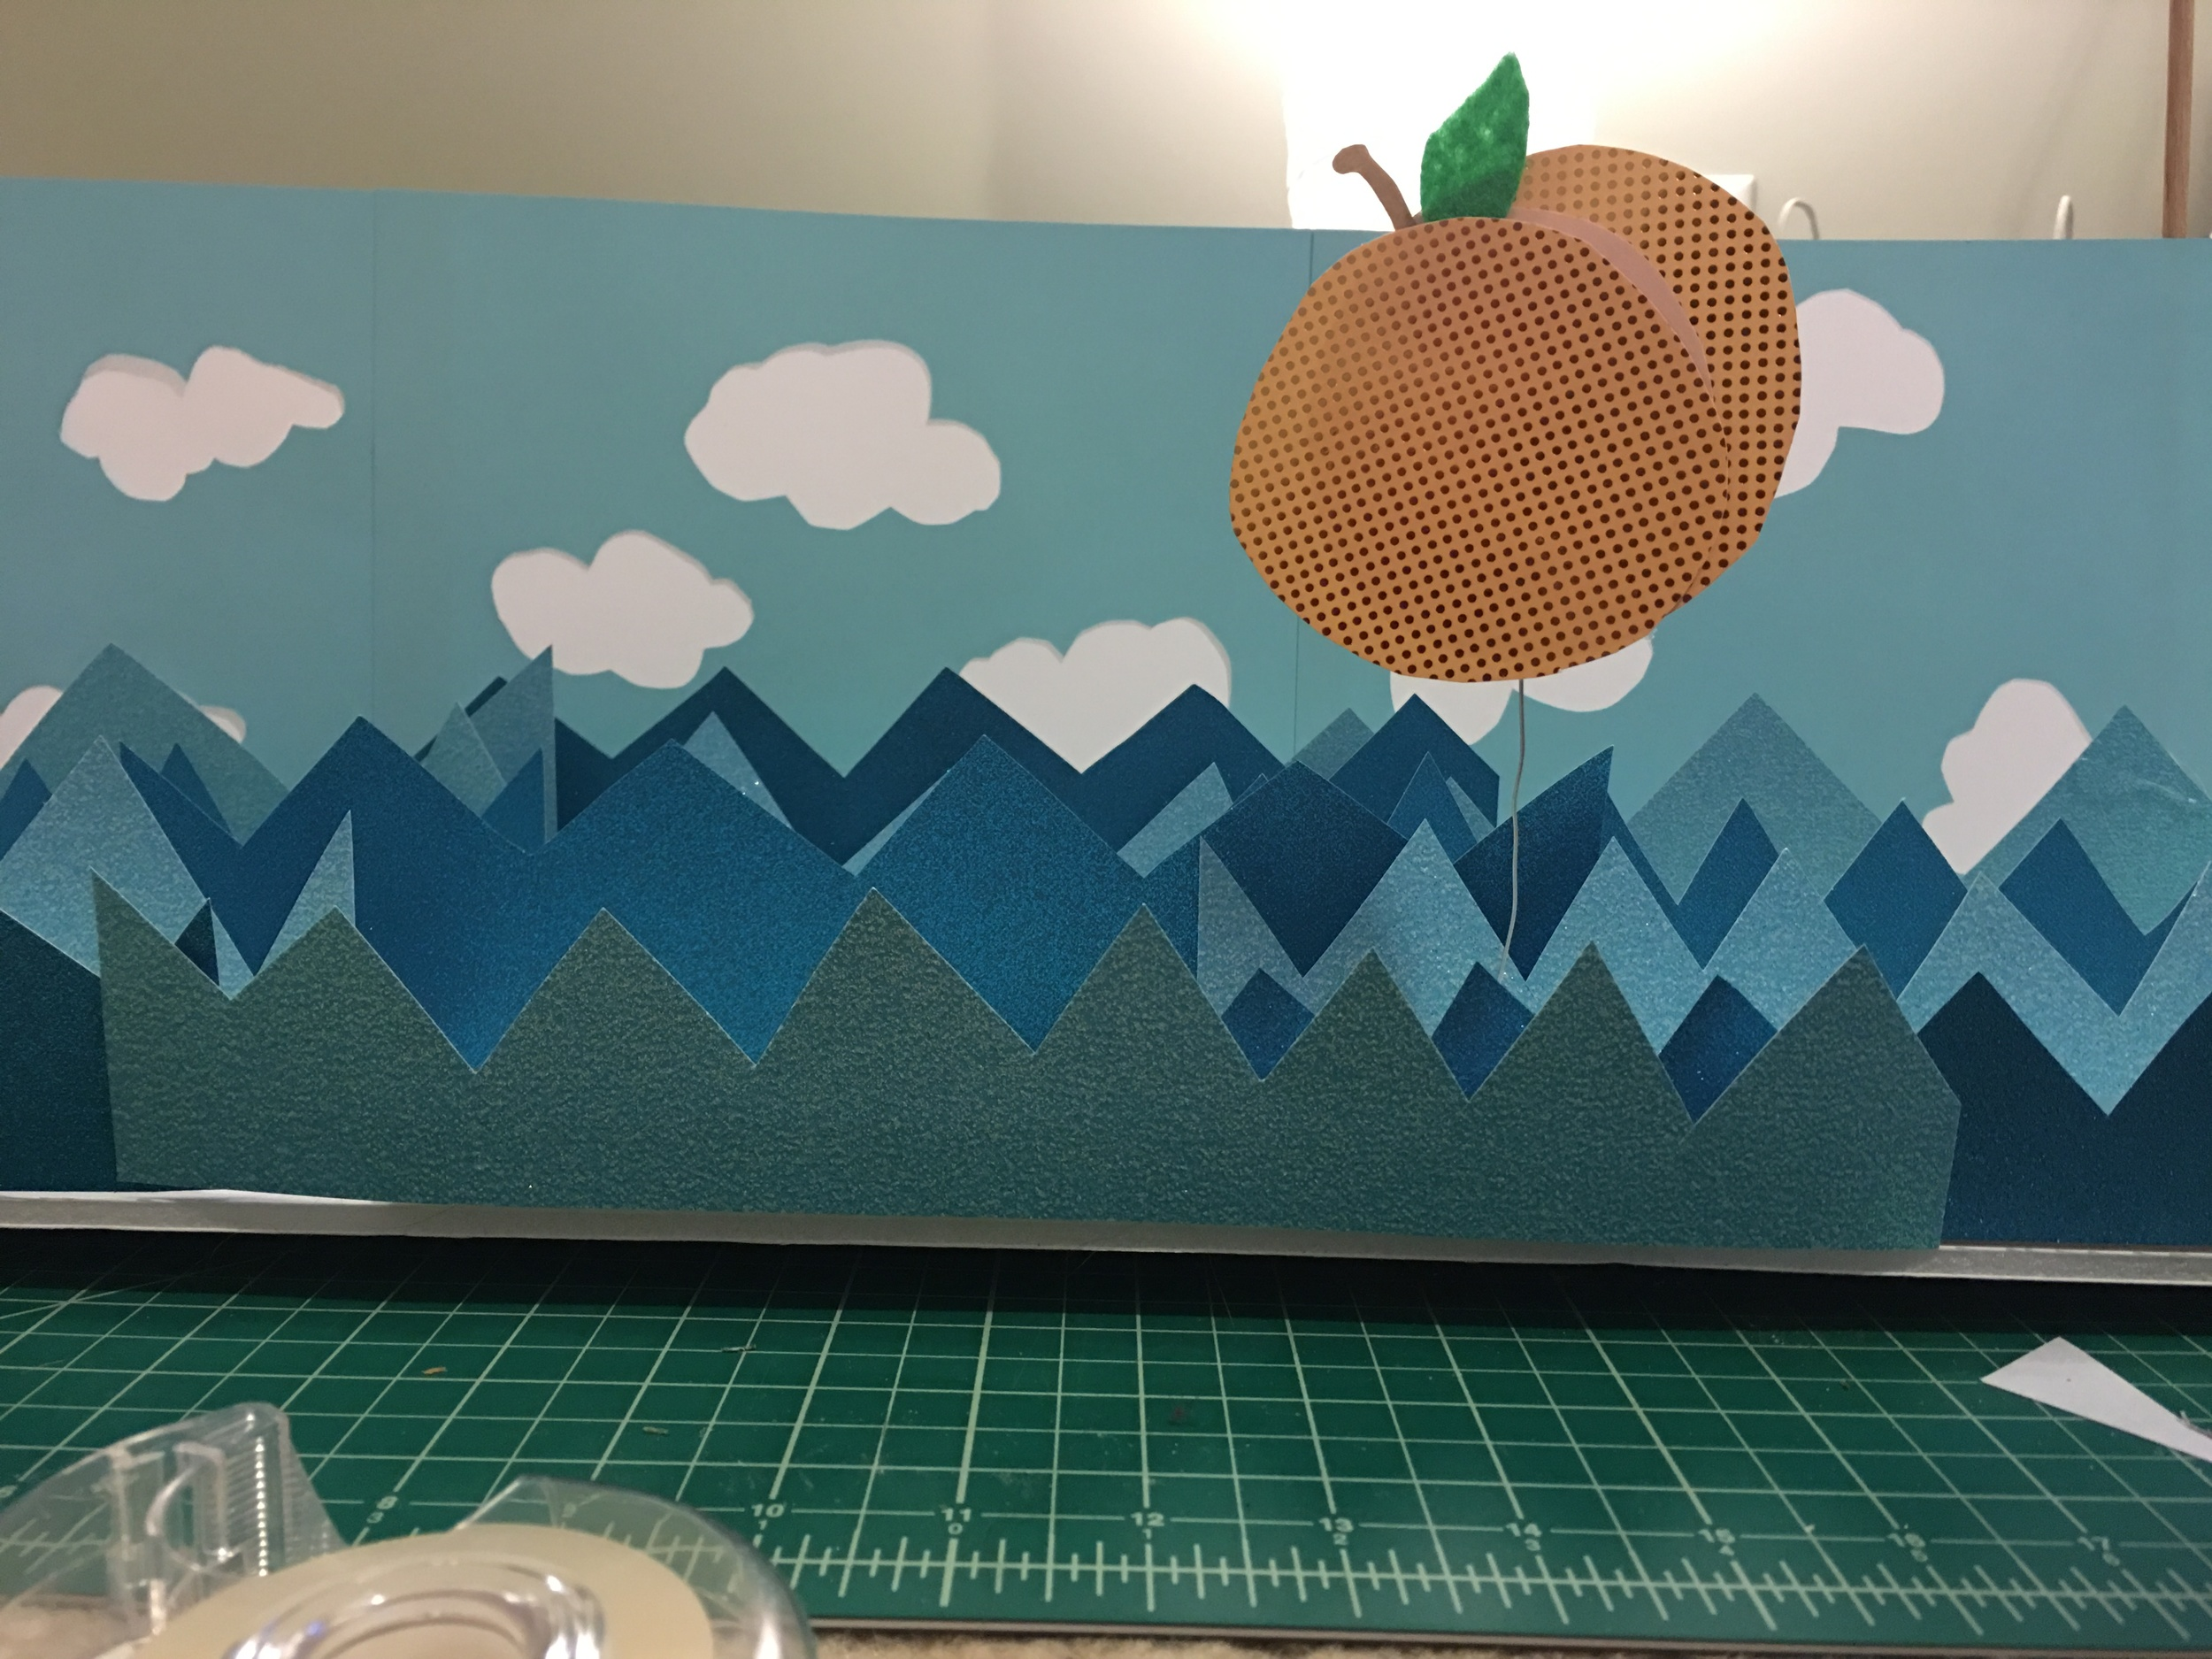 James and the Giant Peach in Progress